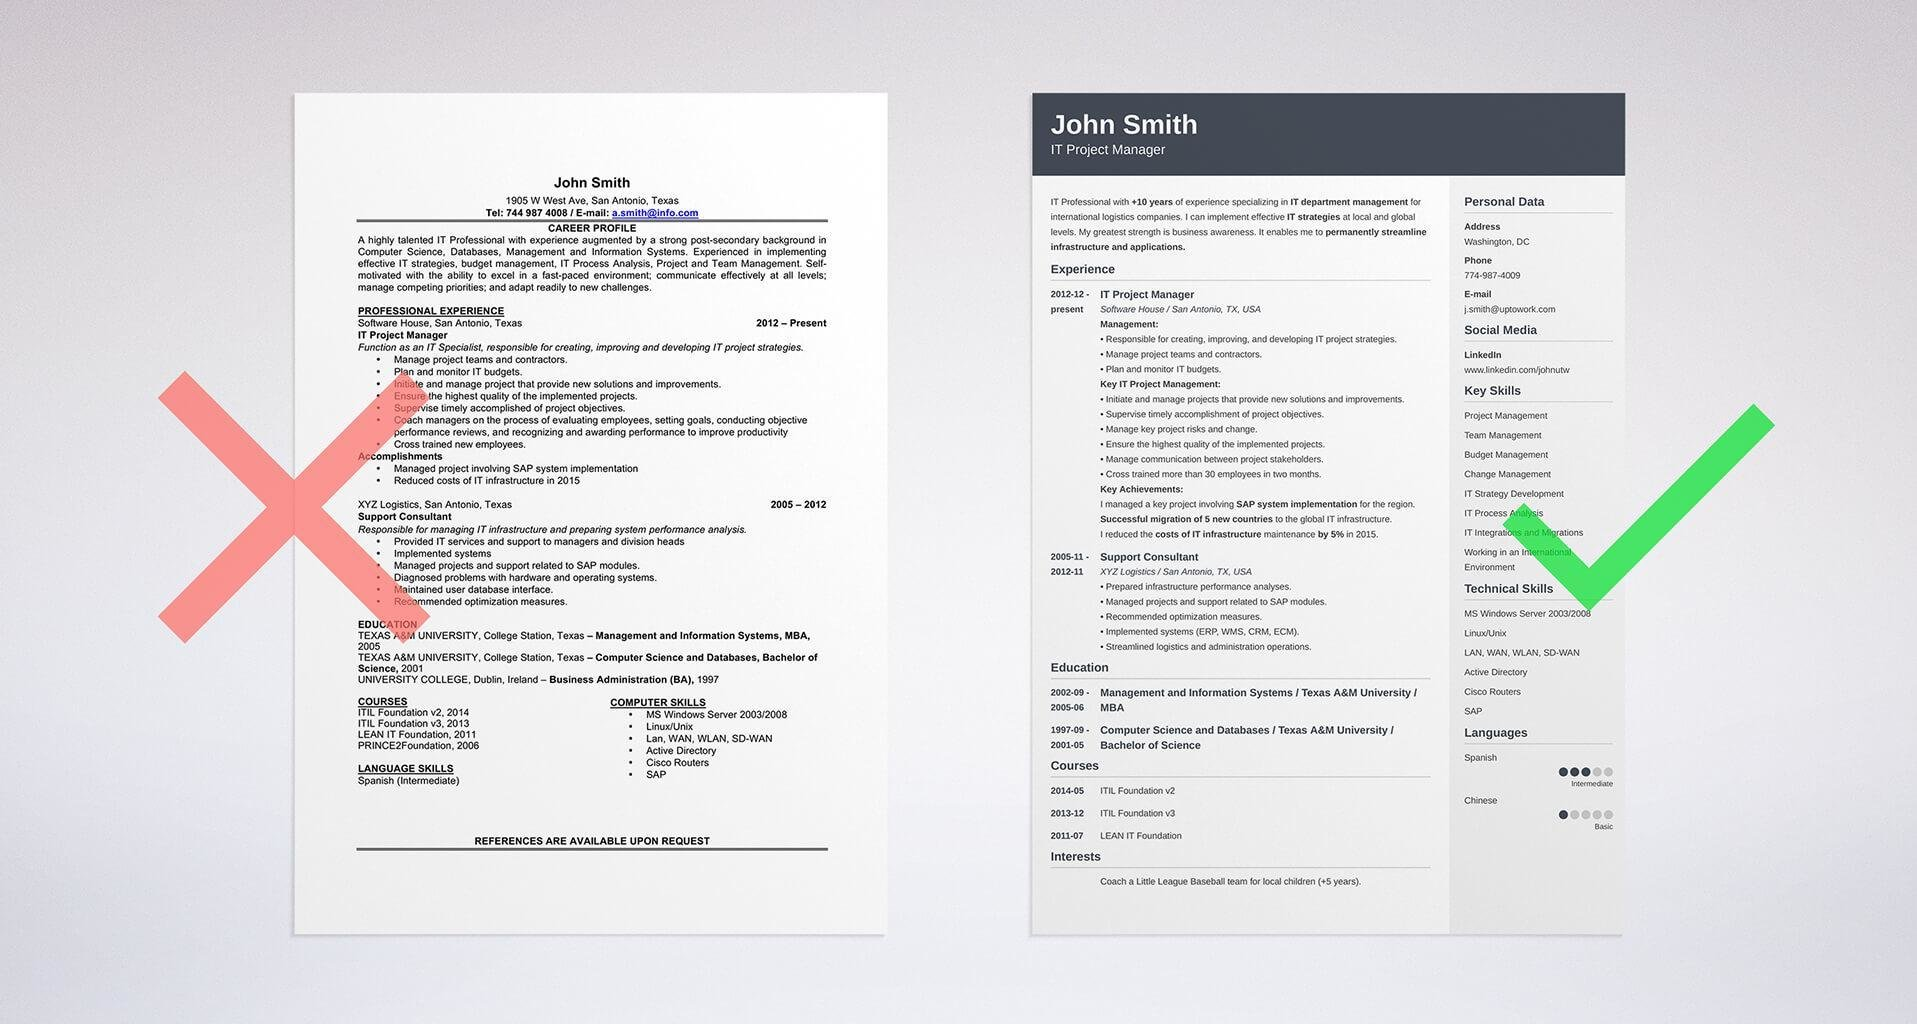 best resume format professional samples most formats template doing on phone andy purdy Resume Most Professional Resume